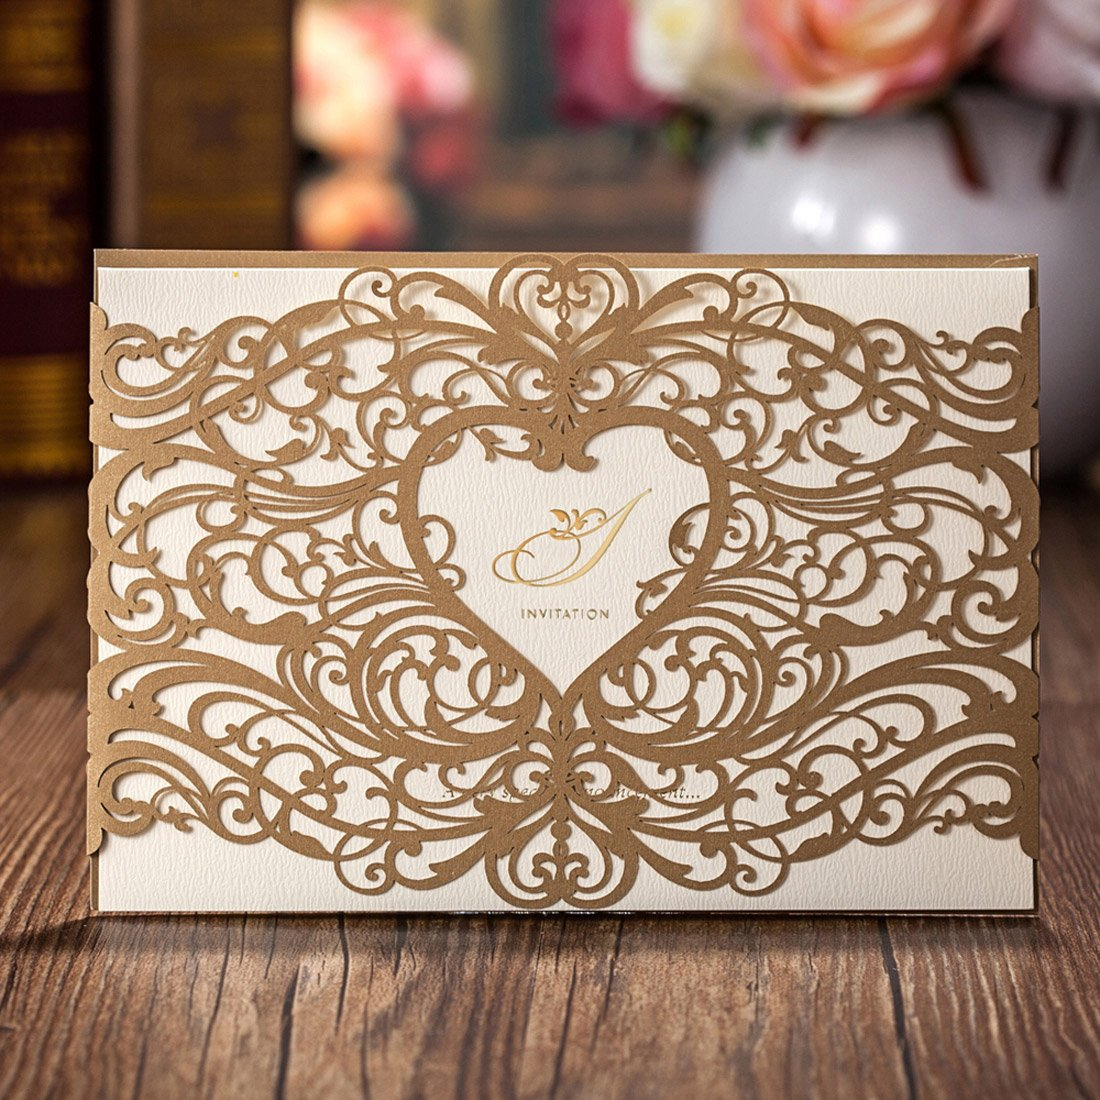 50 Pieces Wishmade Gold Heart Laser Cut Wedding Invitations Cards ...